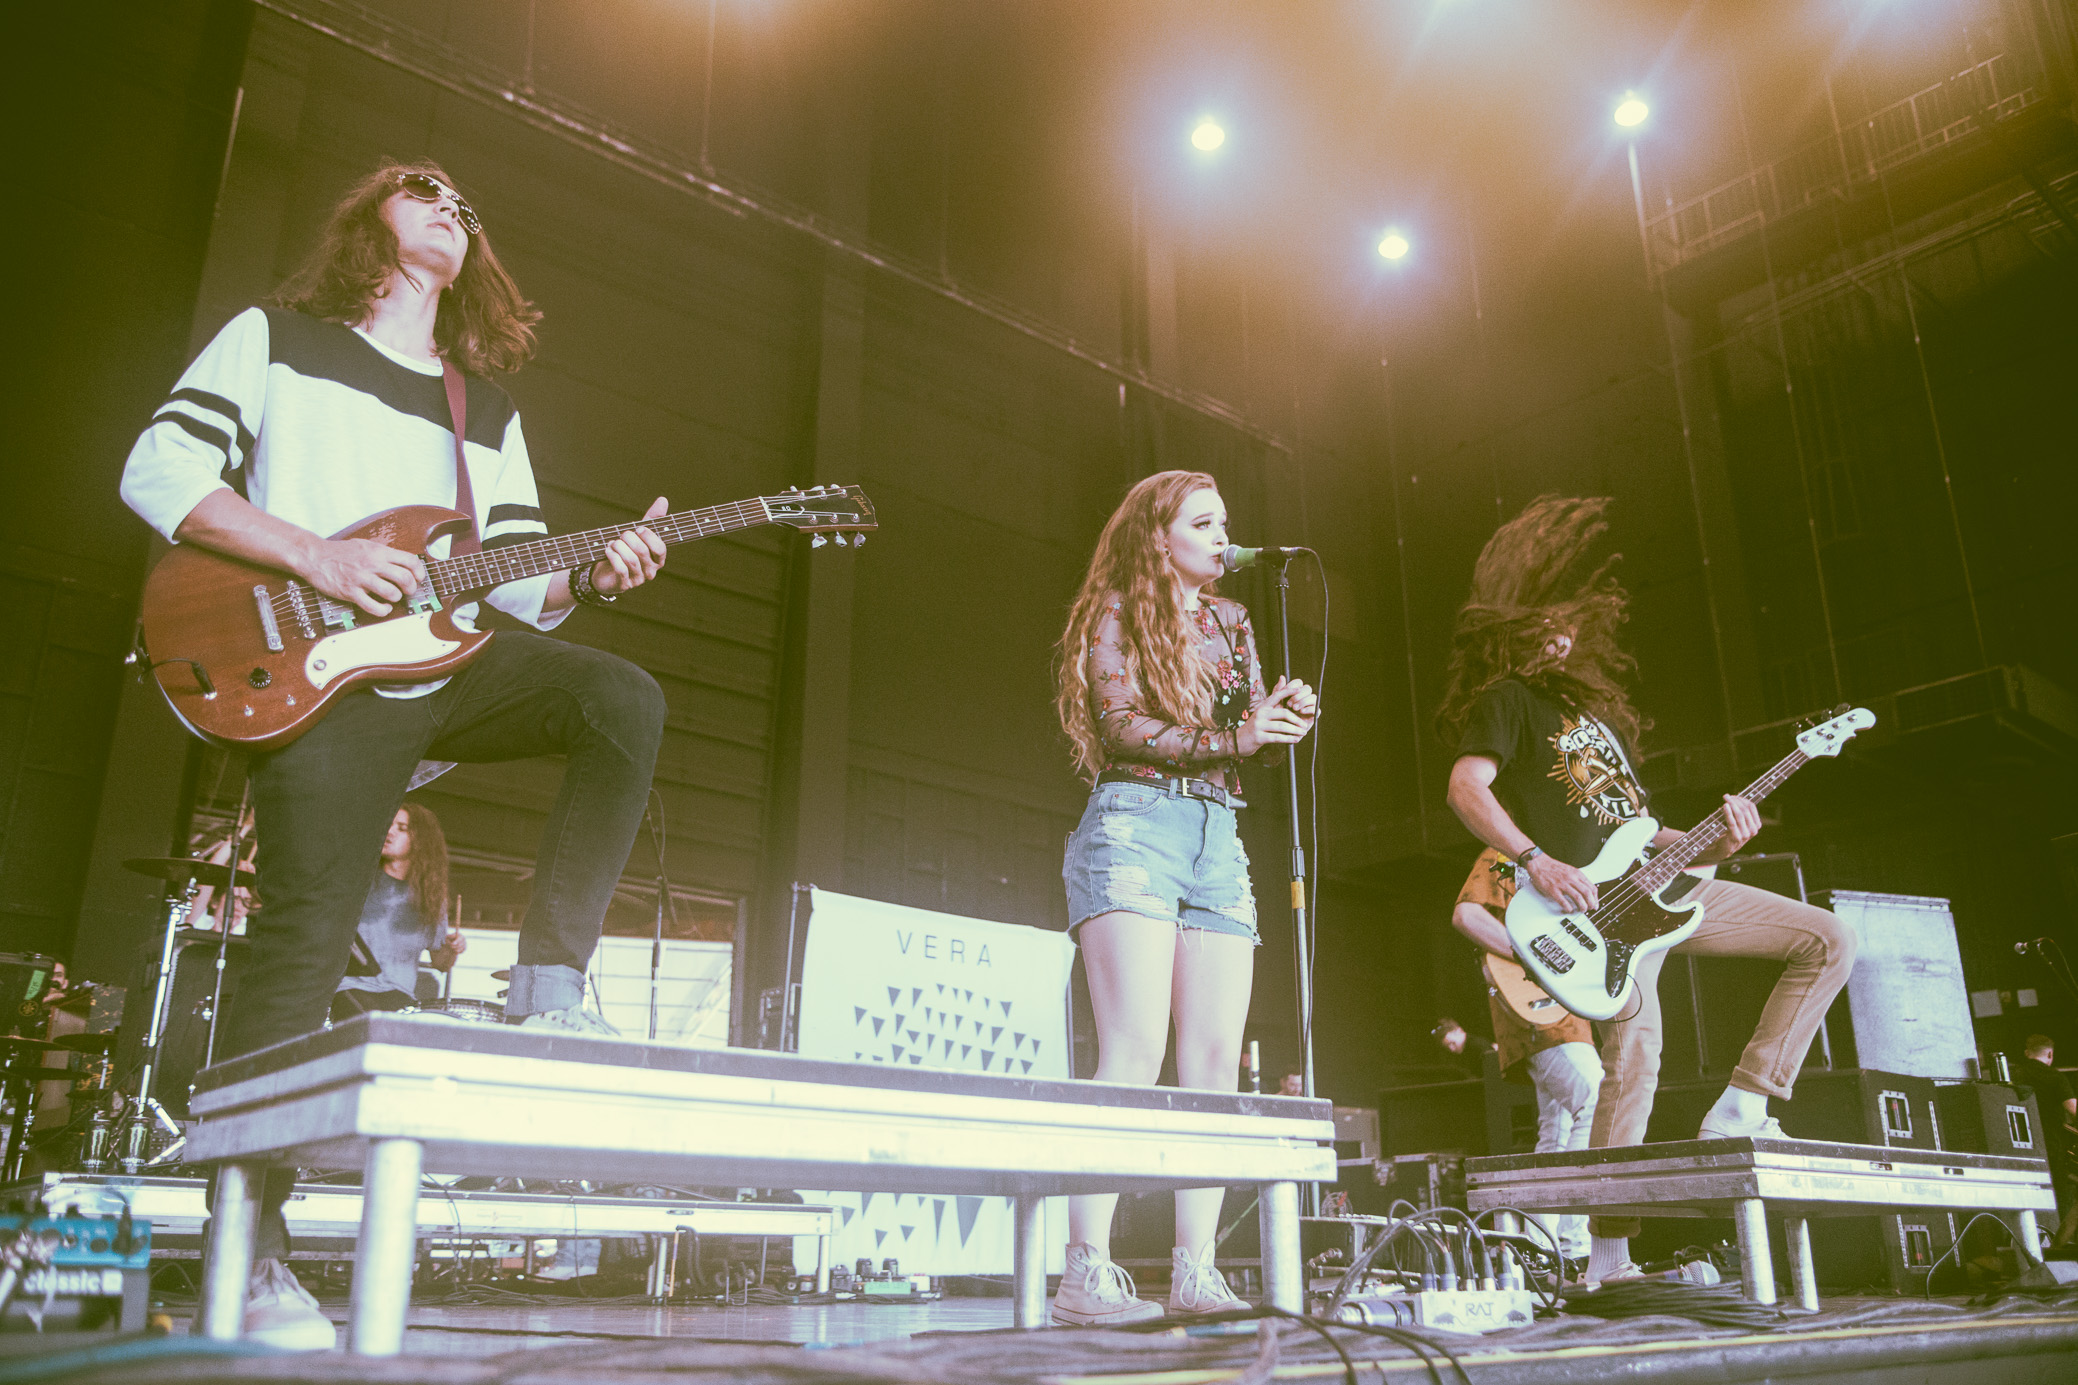 Jule Vera performs in concert at the Vans Warped Tour in Atlanta, Georgia on June 29th, 2017. (Photo by David A. Smith/DSmithScenes)